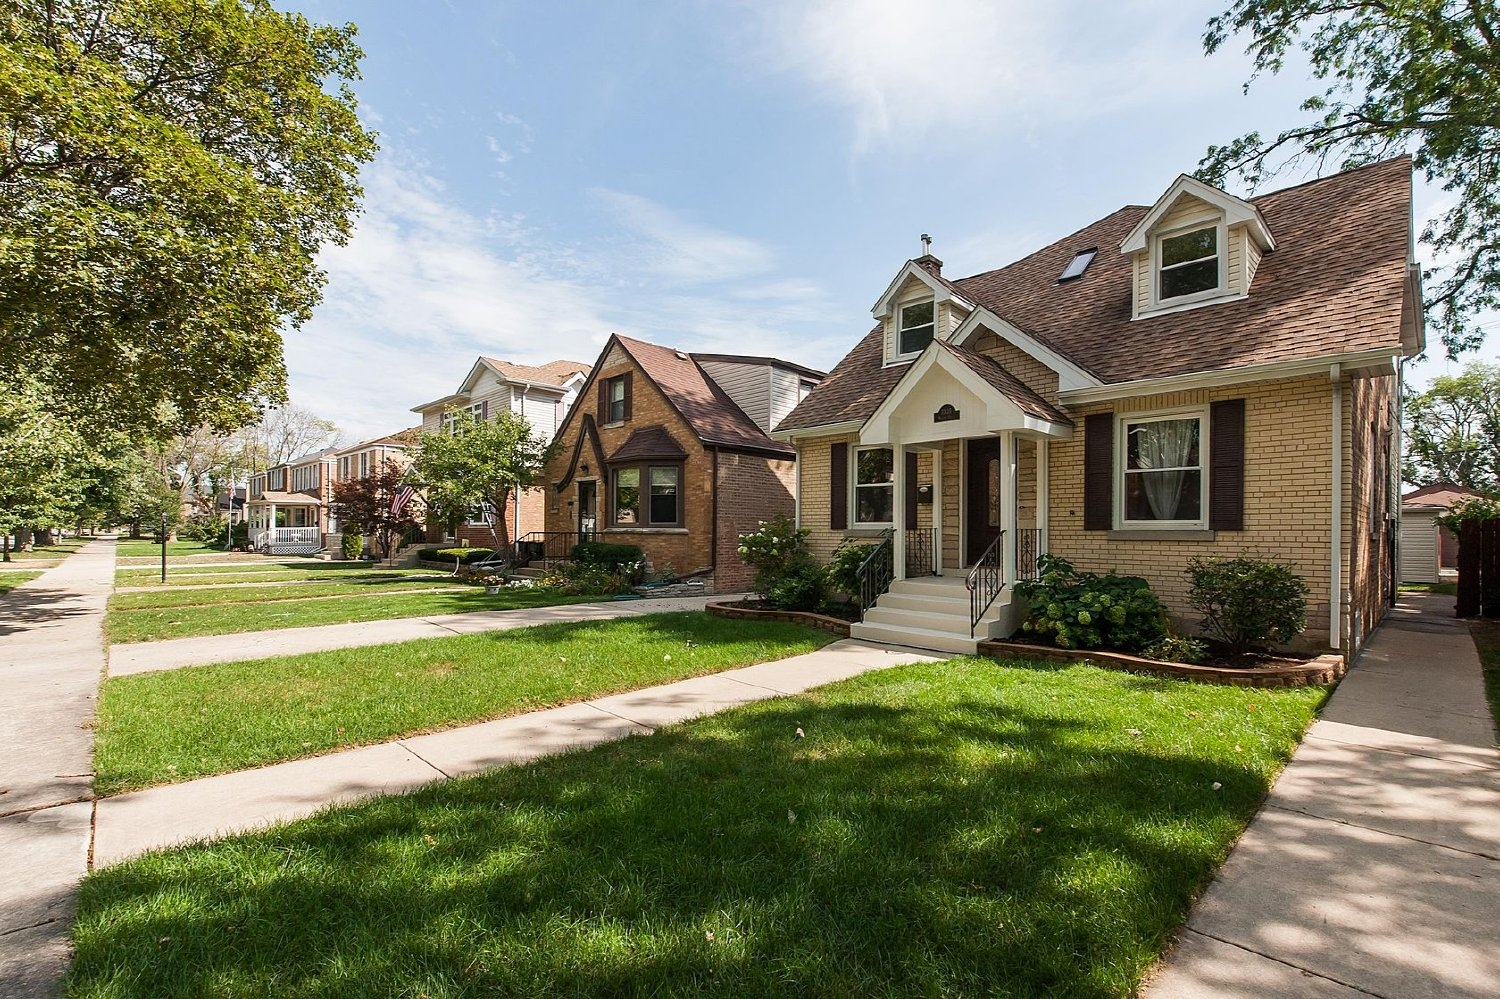 7335 N. Odell Avenue Chicago IL 60631